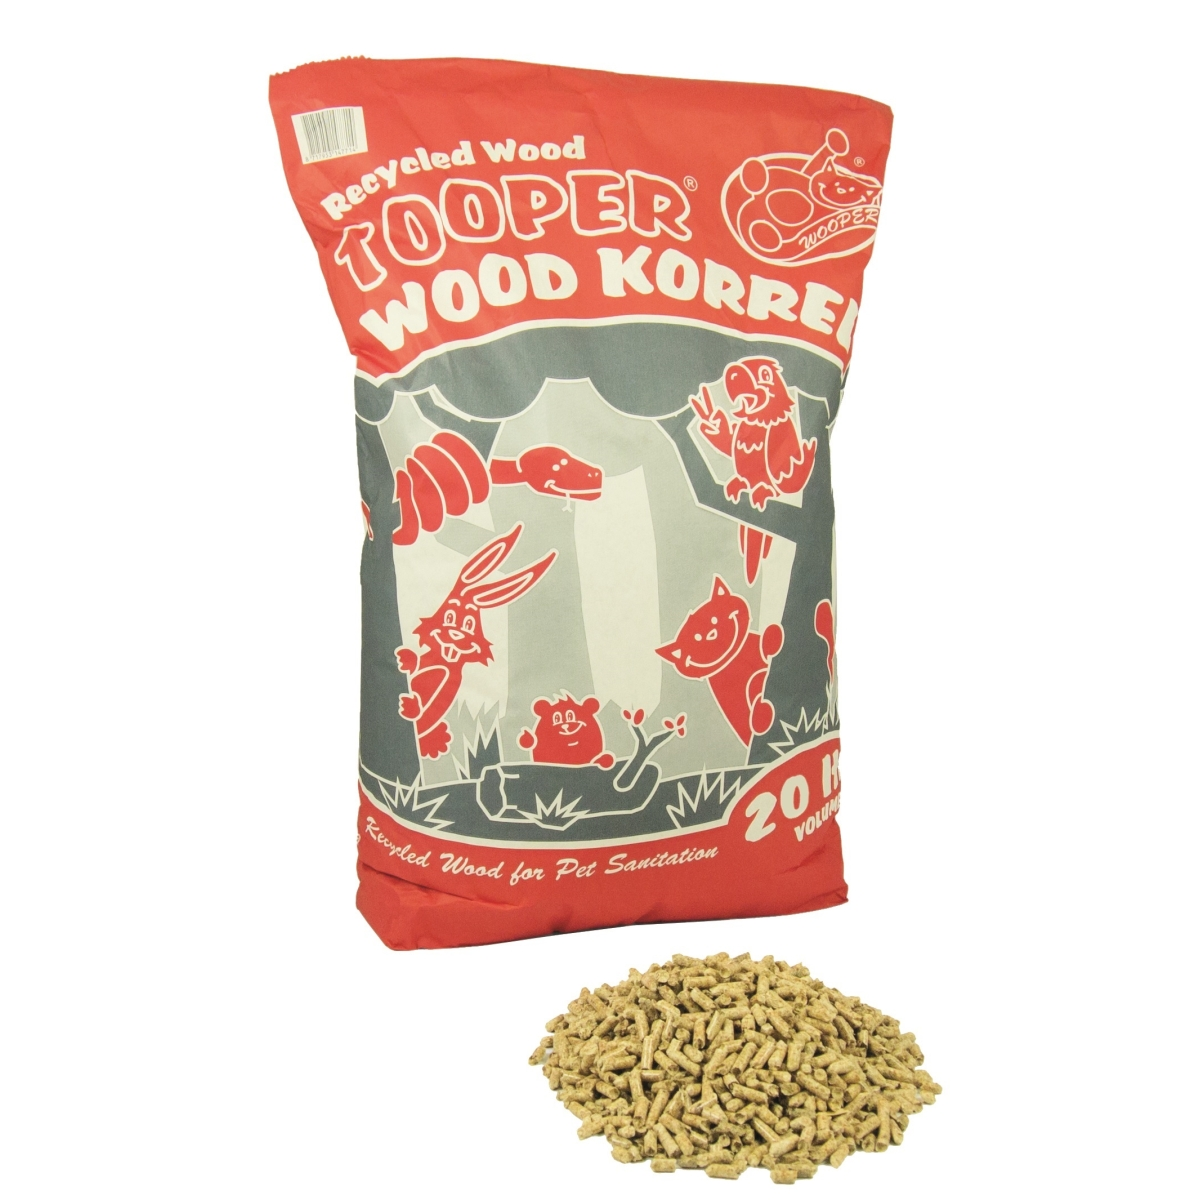 WO TOOPER WOOD KORREL 20LTR 00001